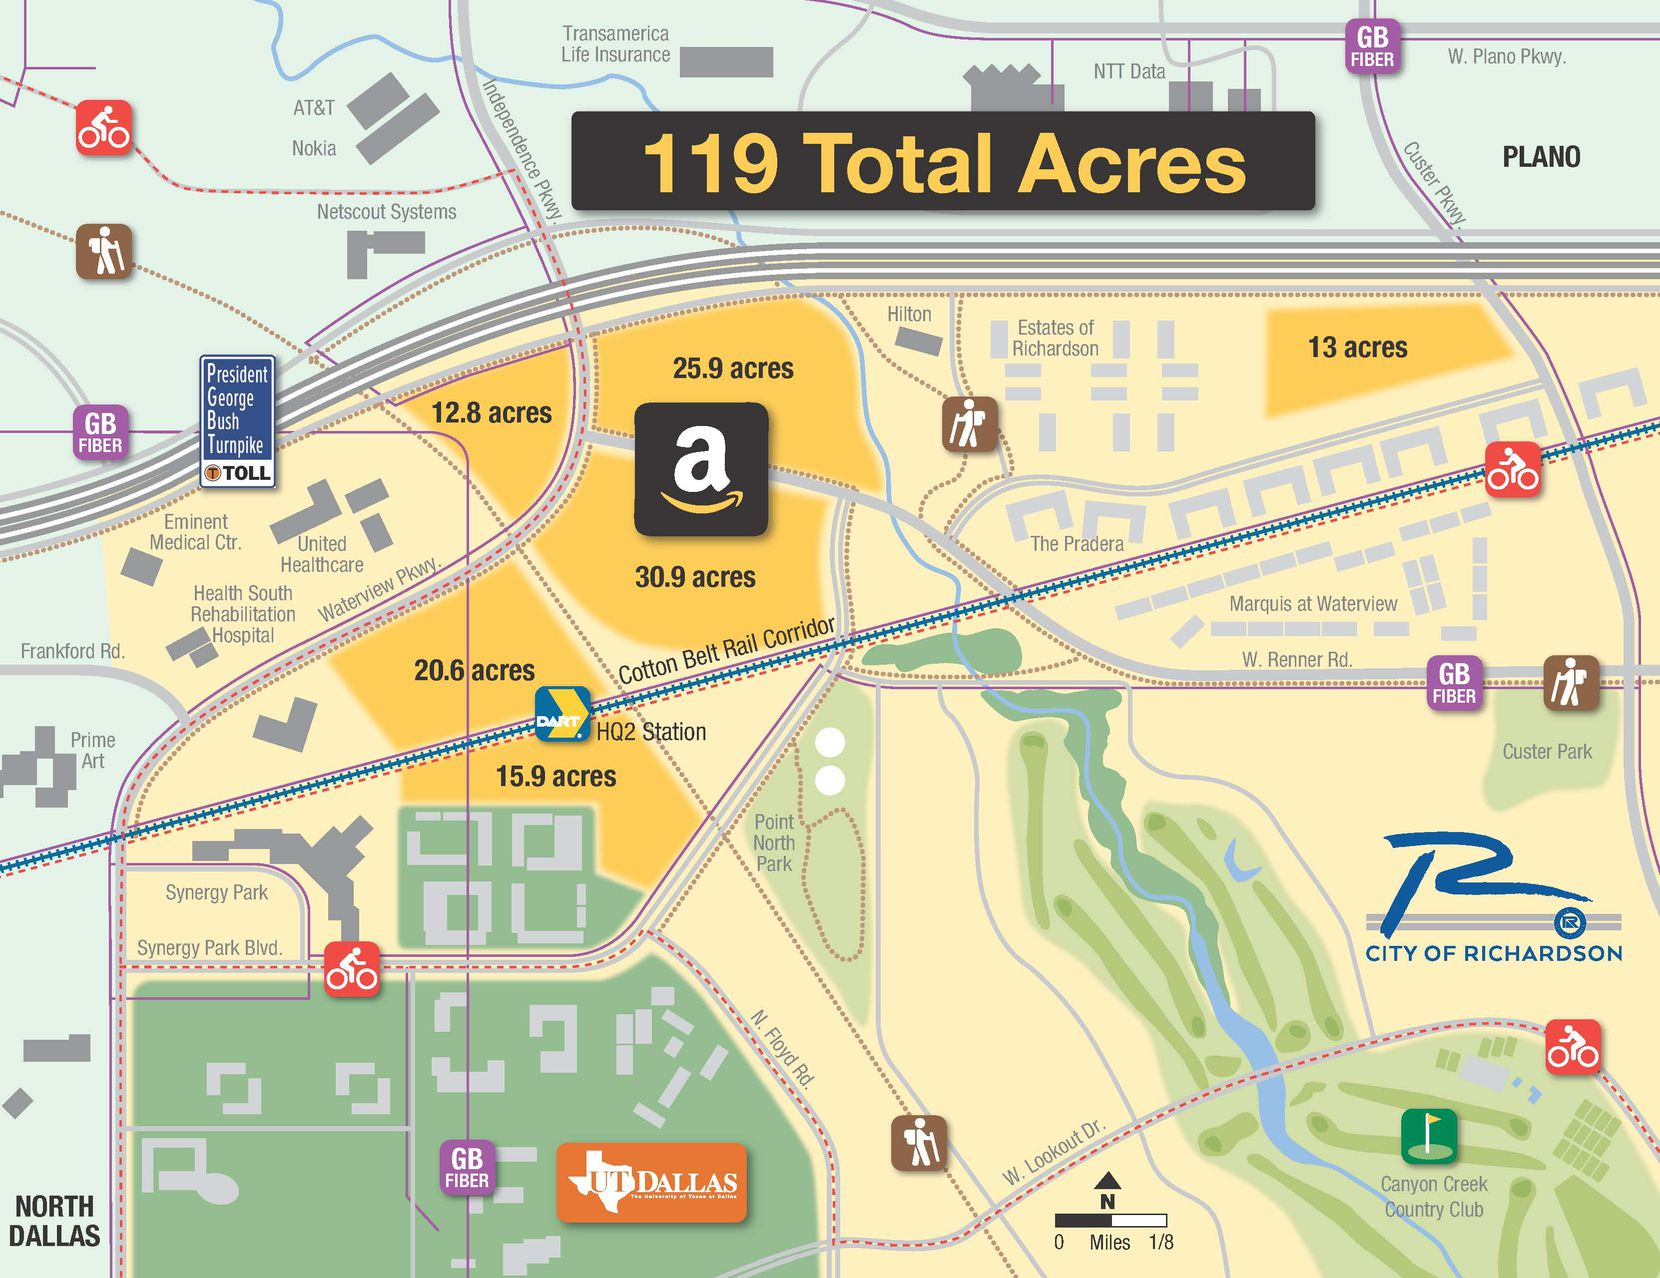 Available land, access to transit and a trained workforce are among pieces of Richardson's lure to draw Seattle-based technology and retail giant Amazon's $5 billion second headquarters.